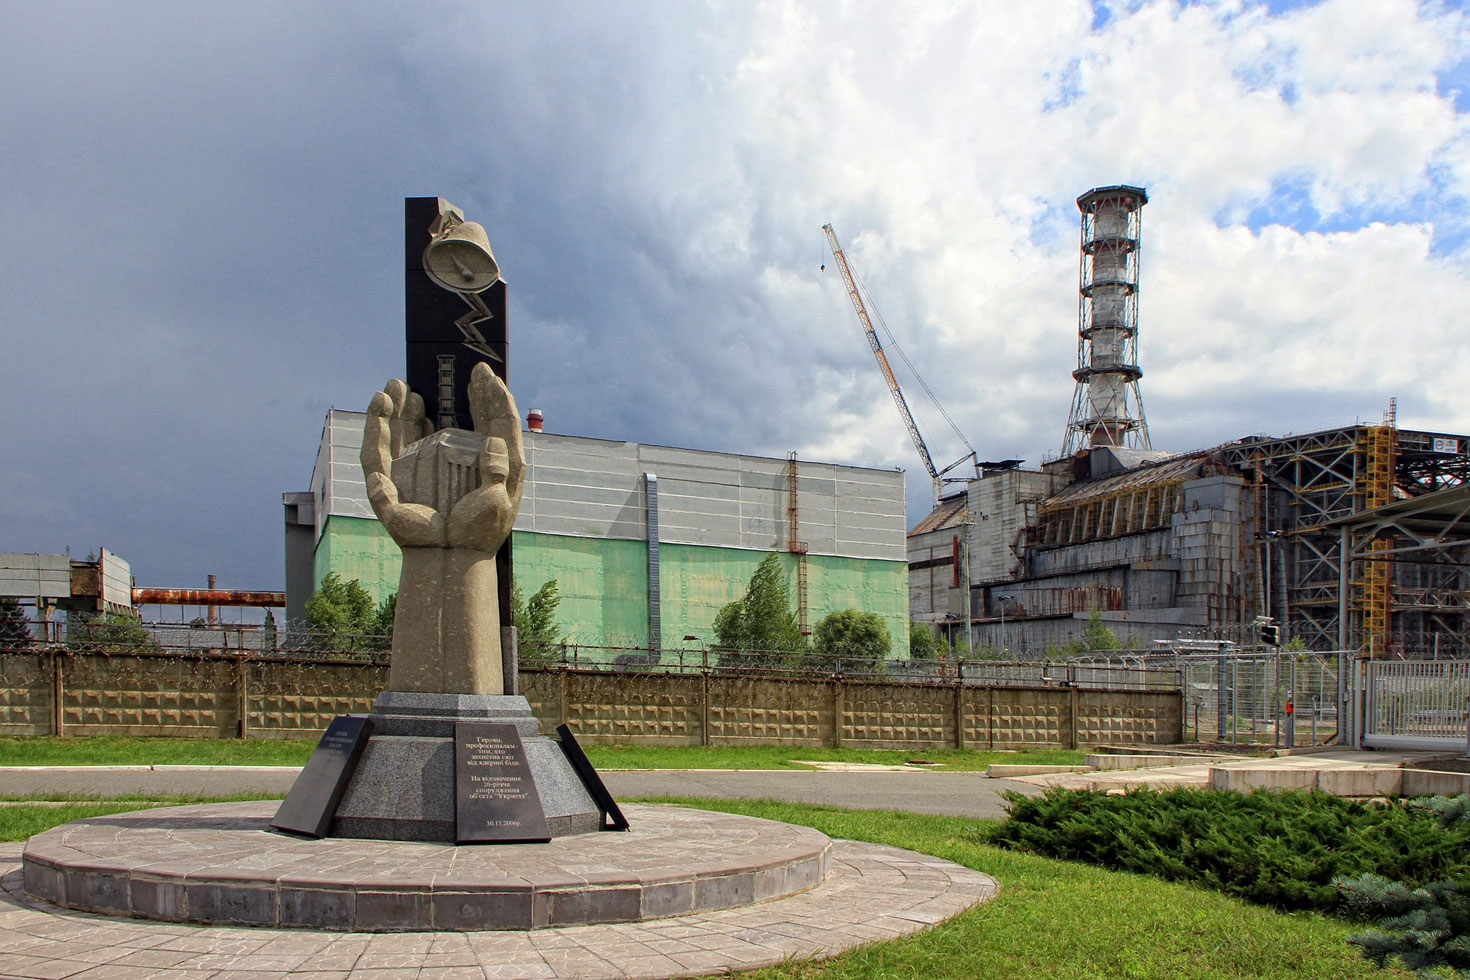 Top Secret Chernobyl: The Nuclear Disaster through the Eyes